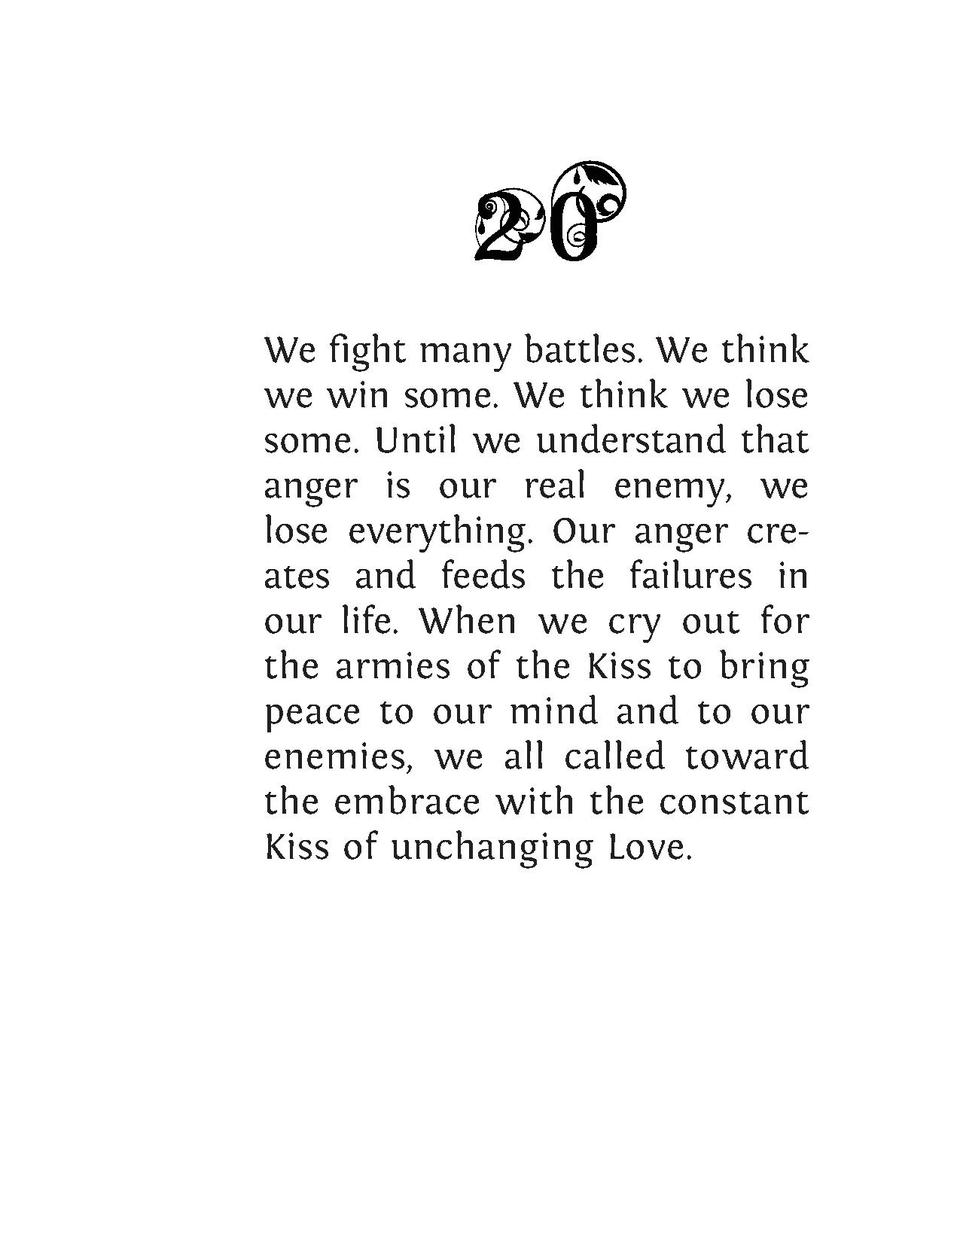 We fight many battles. We think we win some. We think we lose some. Until we understand that anger is our real enemy, we l...